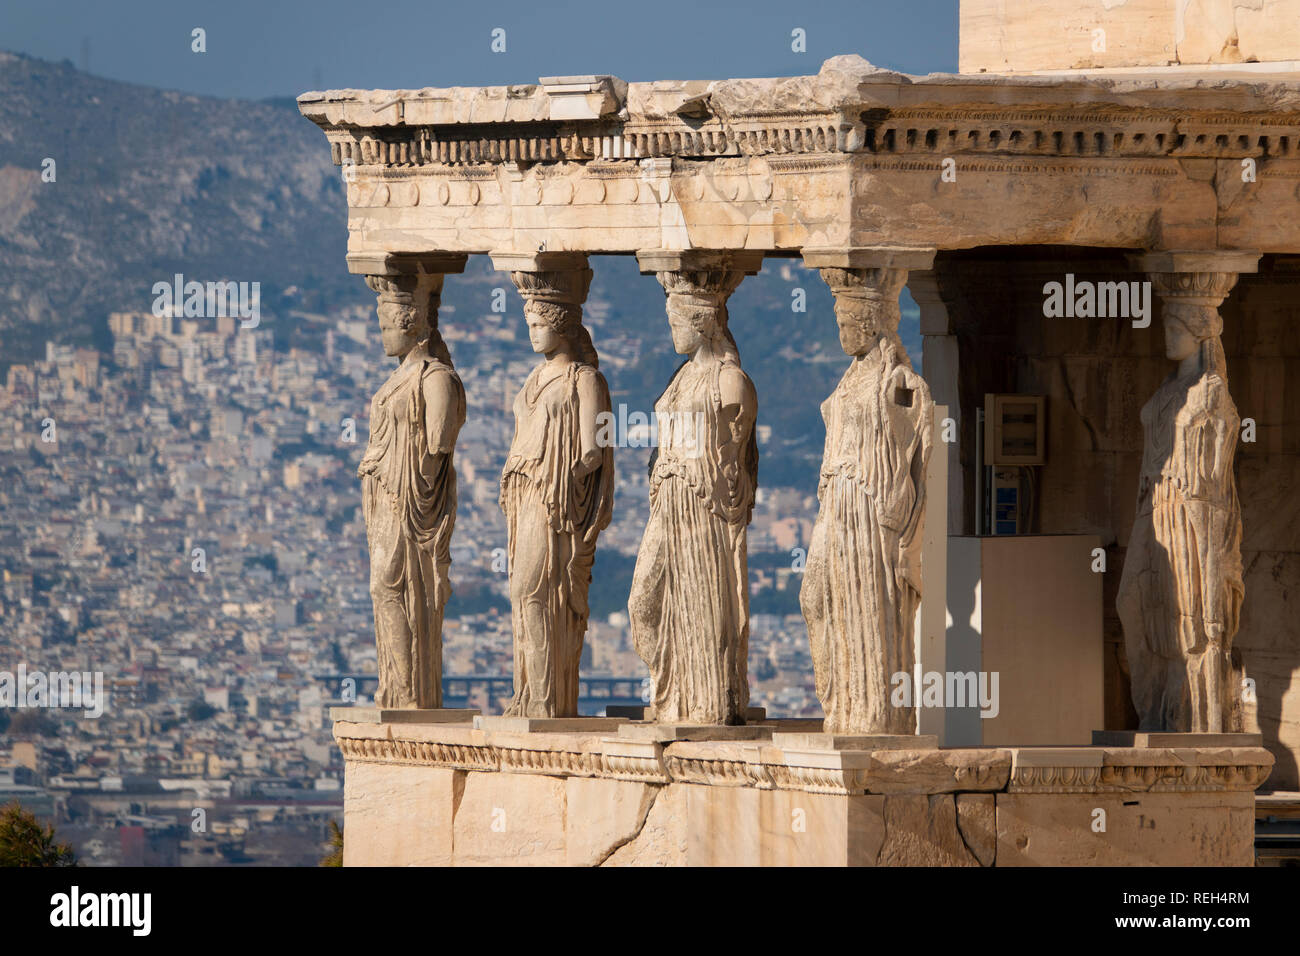 europe-greece-athens-athena-acropolis-erchtheio-pandroseion-columns-of-women-with-the-city-of-athens-in-the-background-REH4RM.jpg